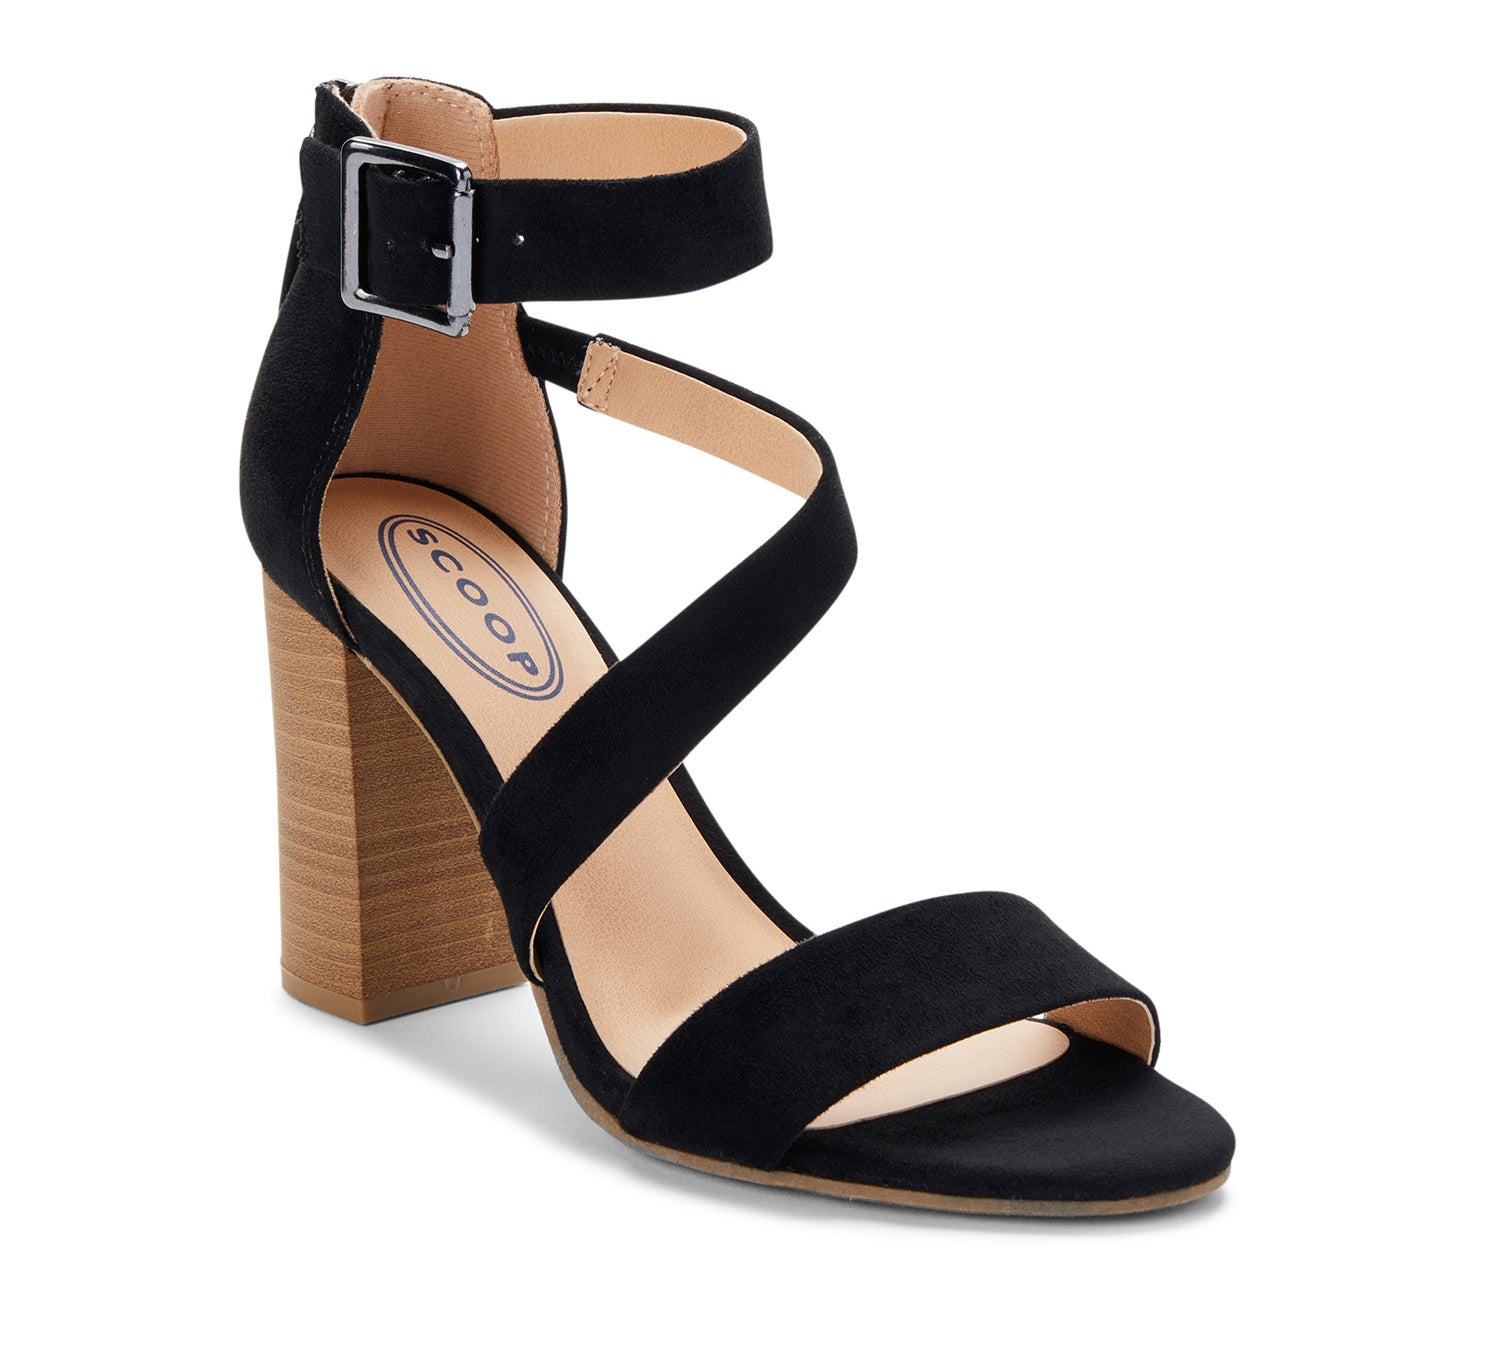 A black heeled sandal with a wrap secure and block heel